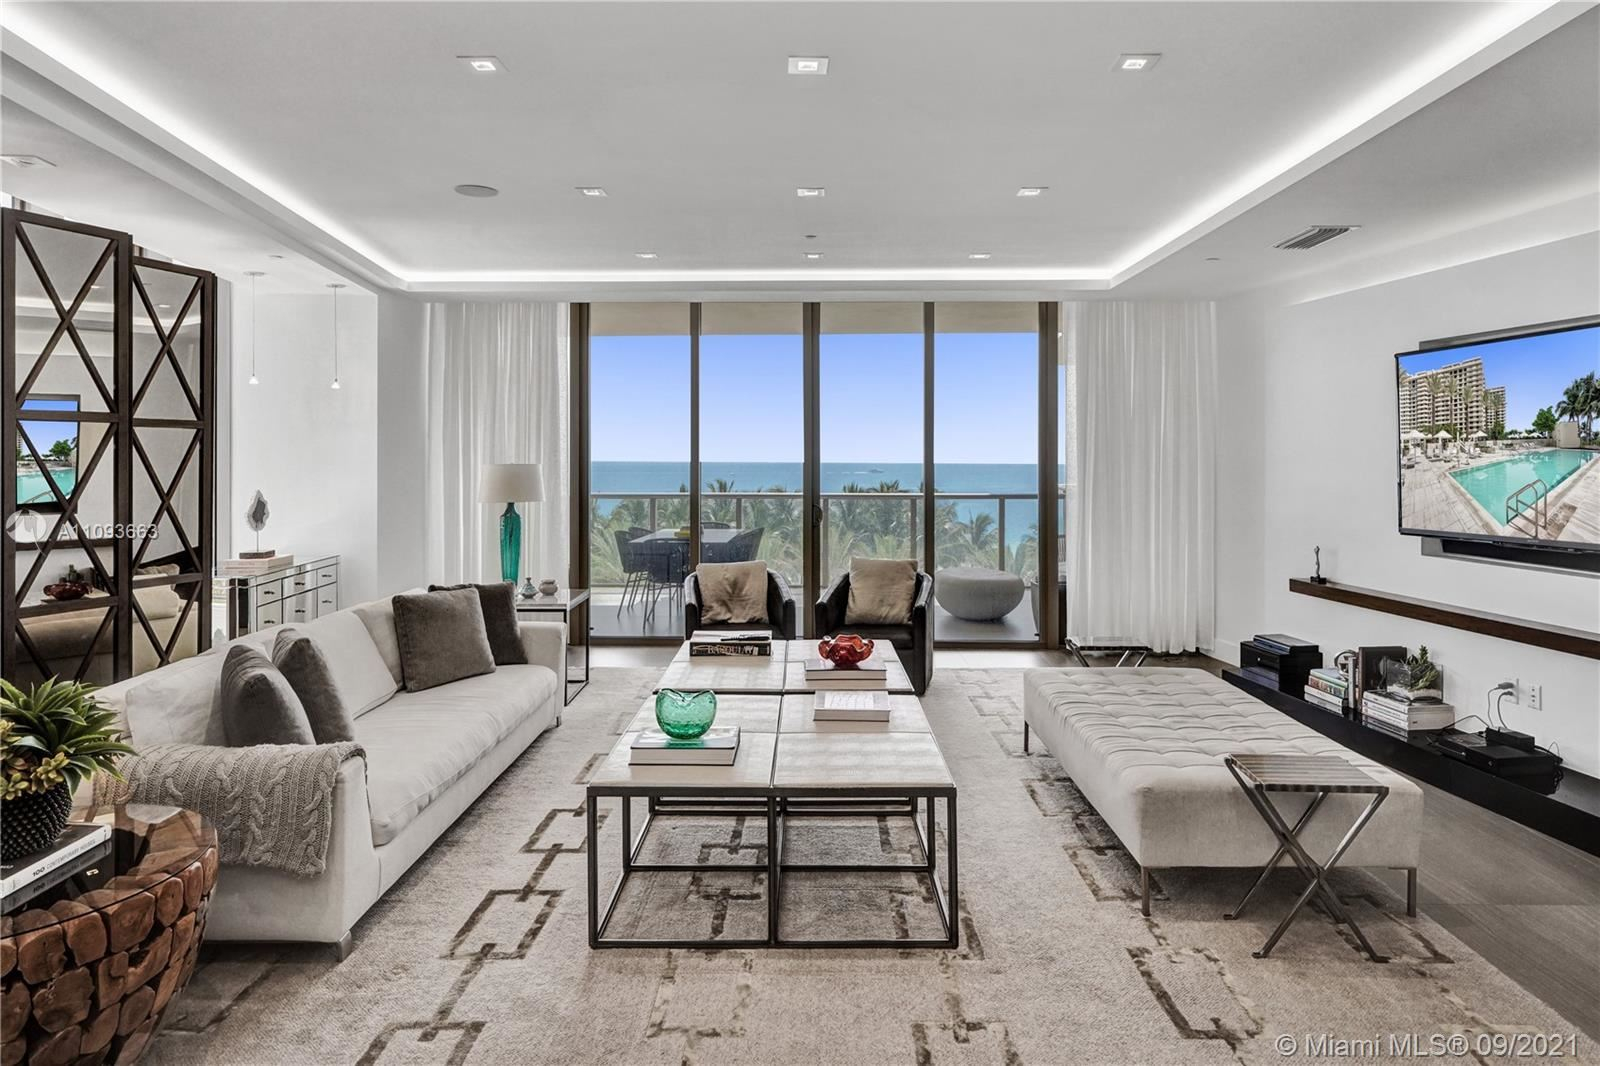 9705 Collins Ave #601N, Bal Harbour, FL 33154 - #: A11093663